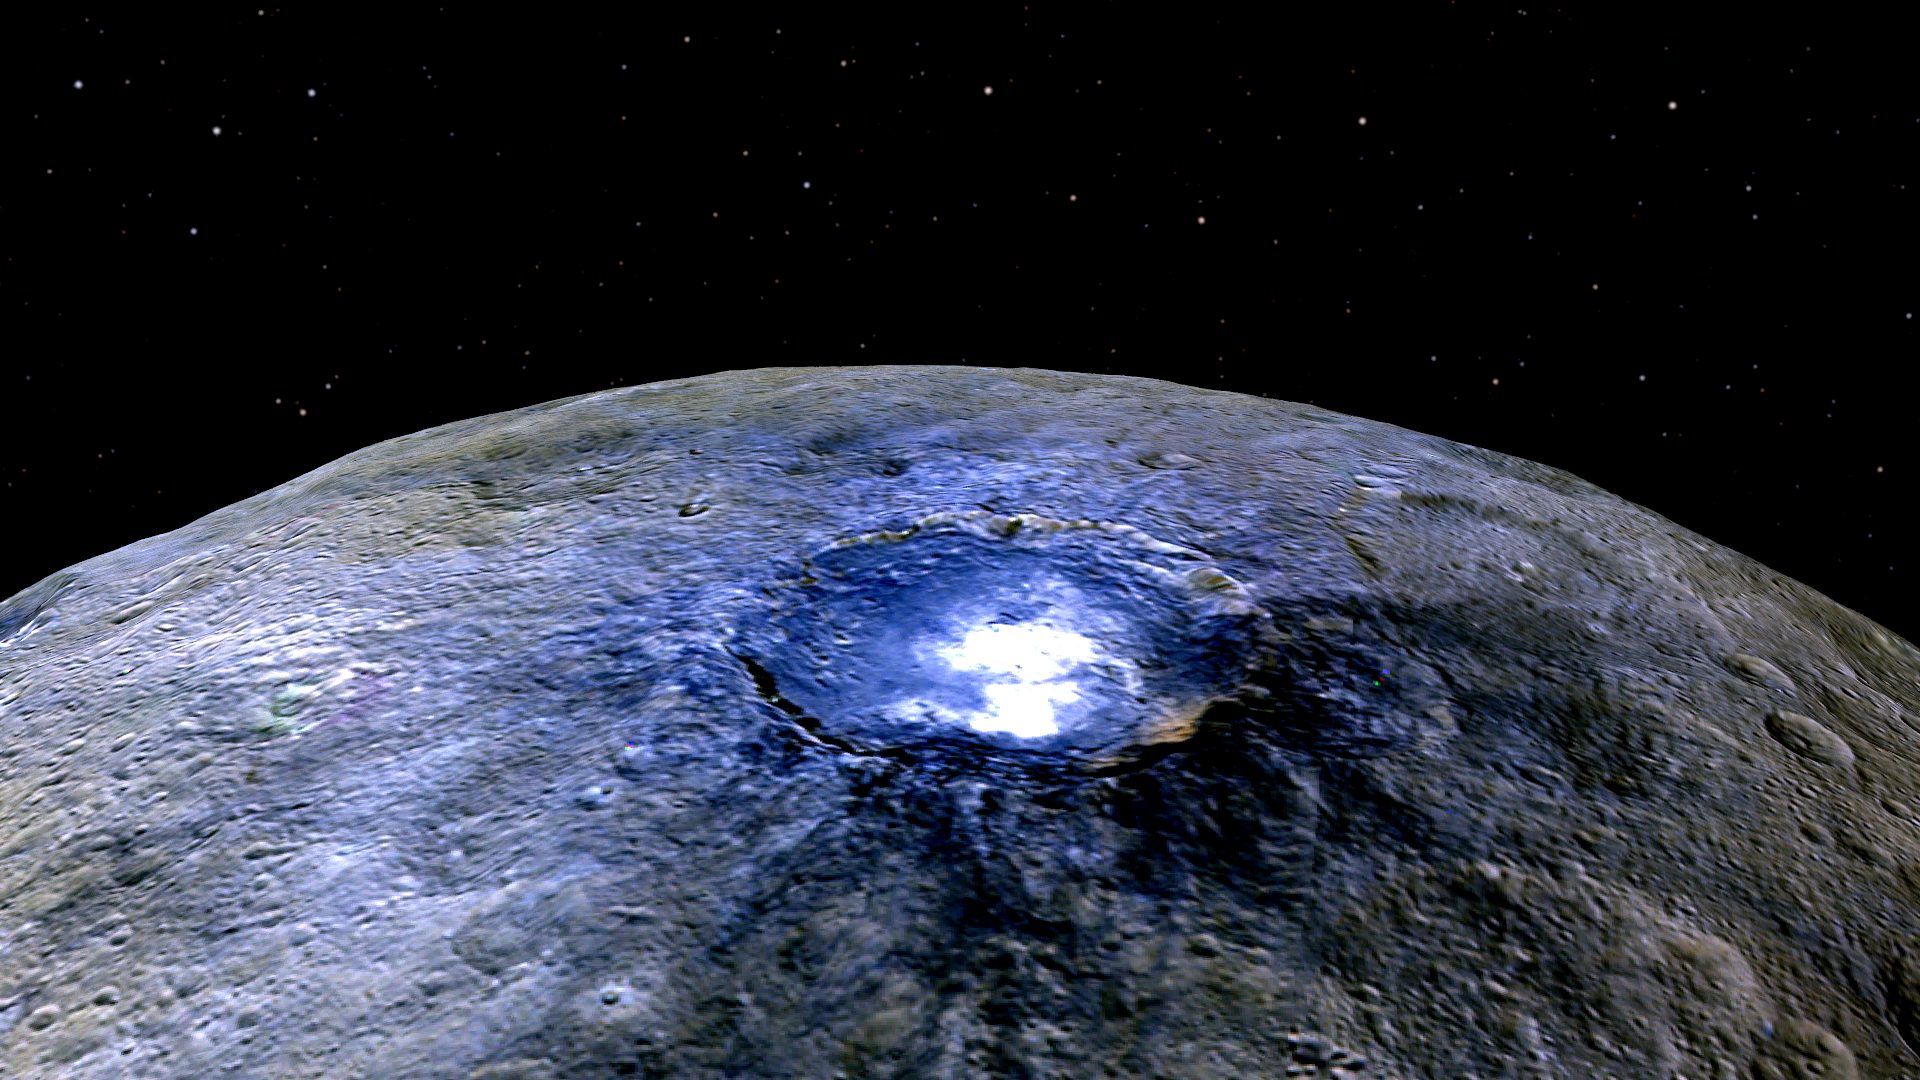 A representation of Ceres' Occator Crater in false colors shows differences in the surface composition.